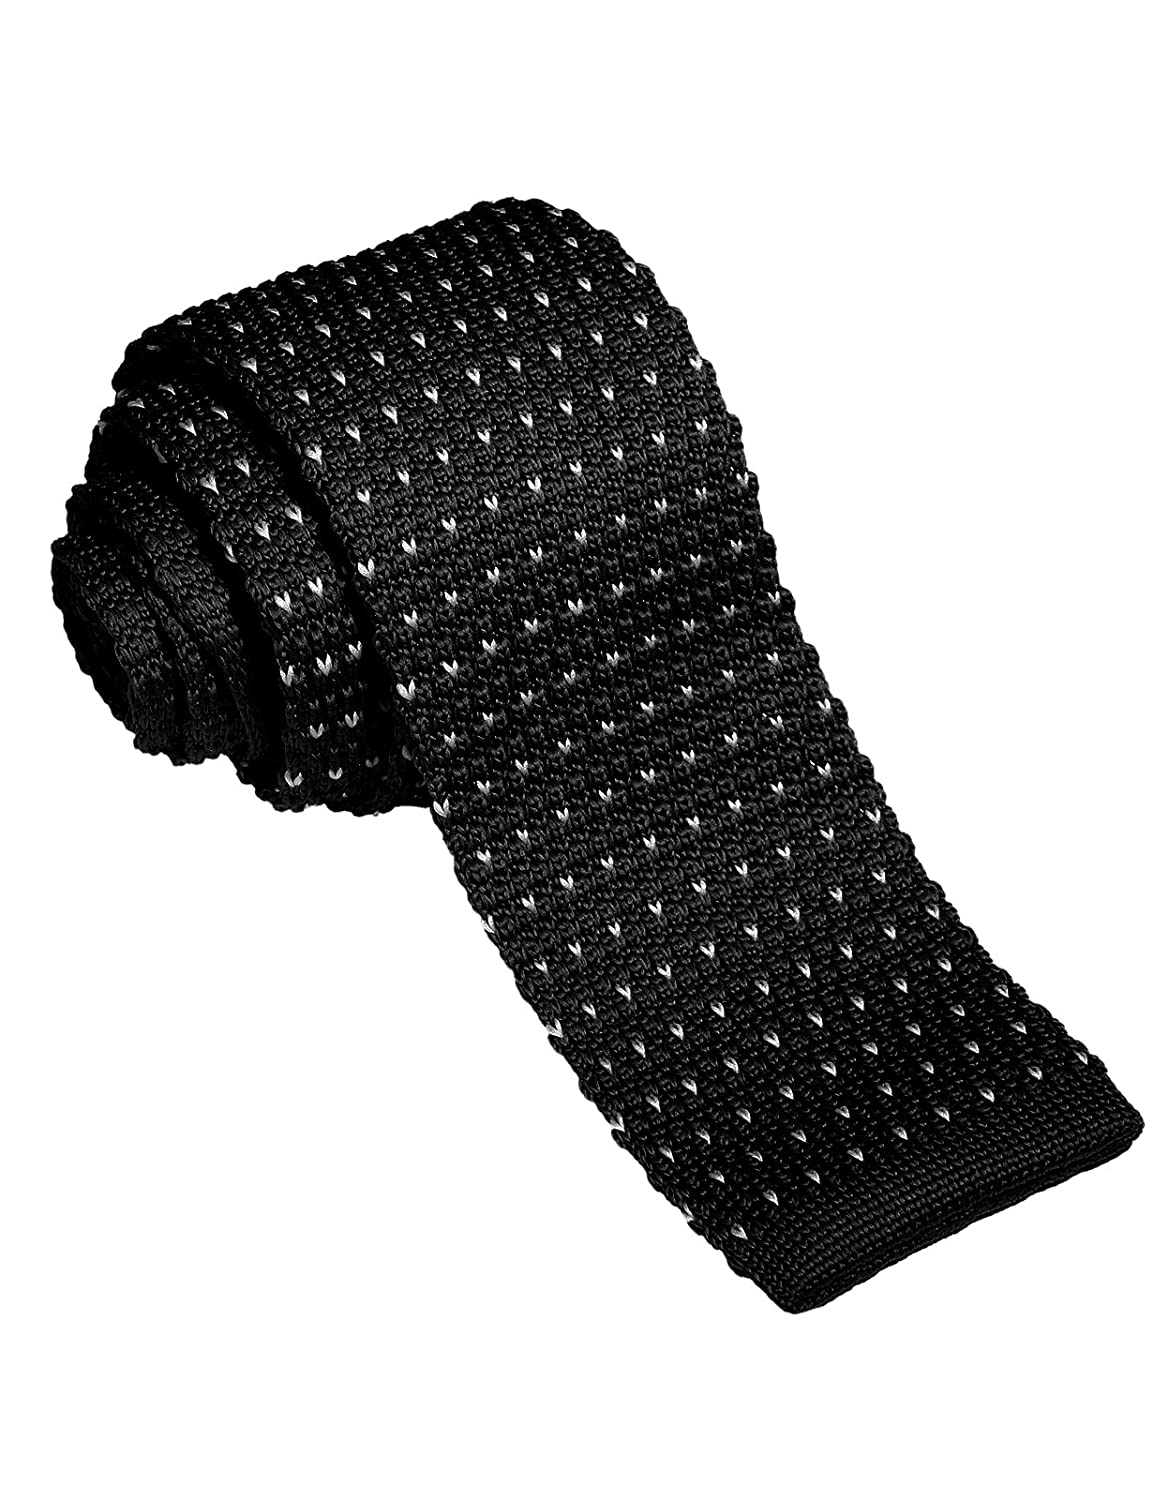 H2H Mens Casual Heart Patterned Knit Neck Tie BLACK (KMANT06) at ...